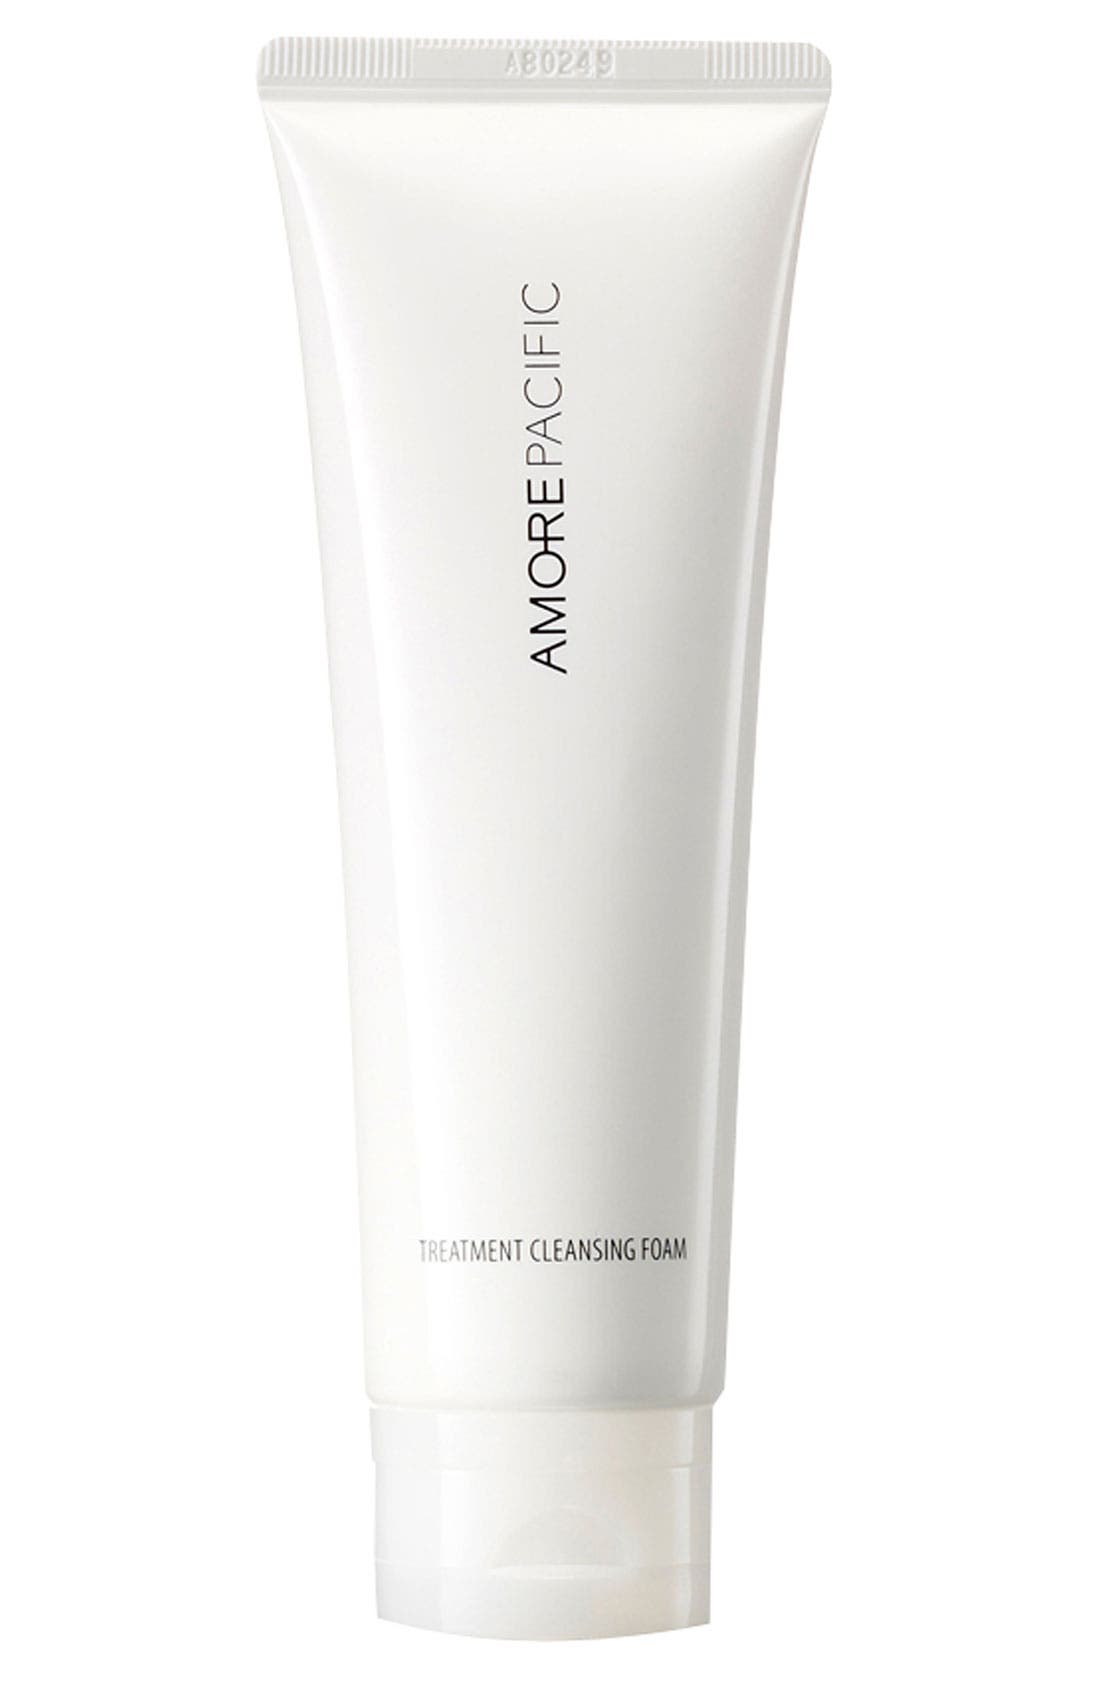 AMOREPACIFIC 'Treatment' Cleansing Foam